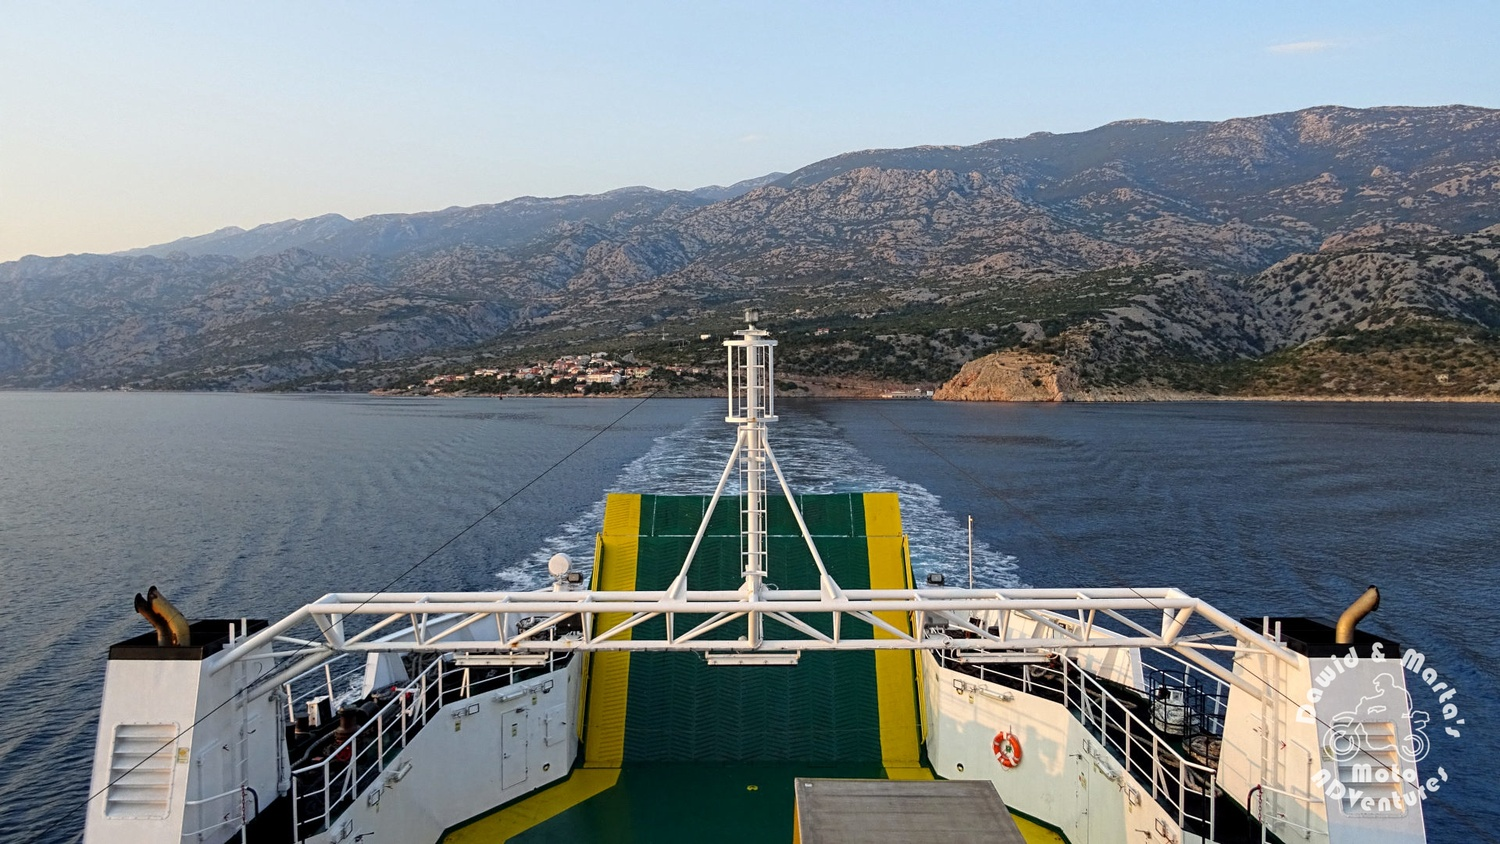 View from the ferry on the Prizna coast - getting to the Pag Island